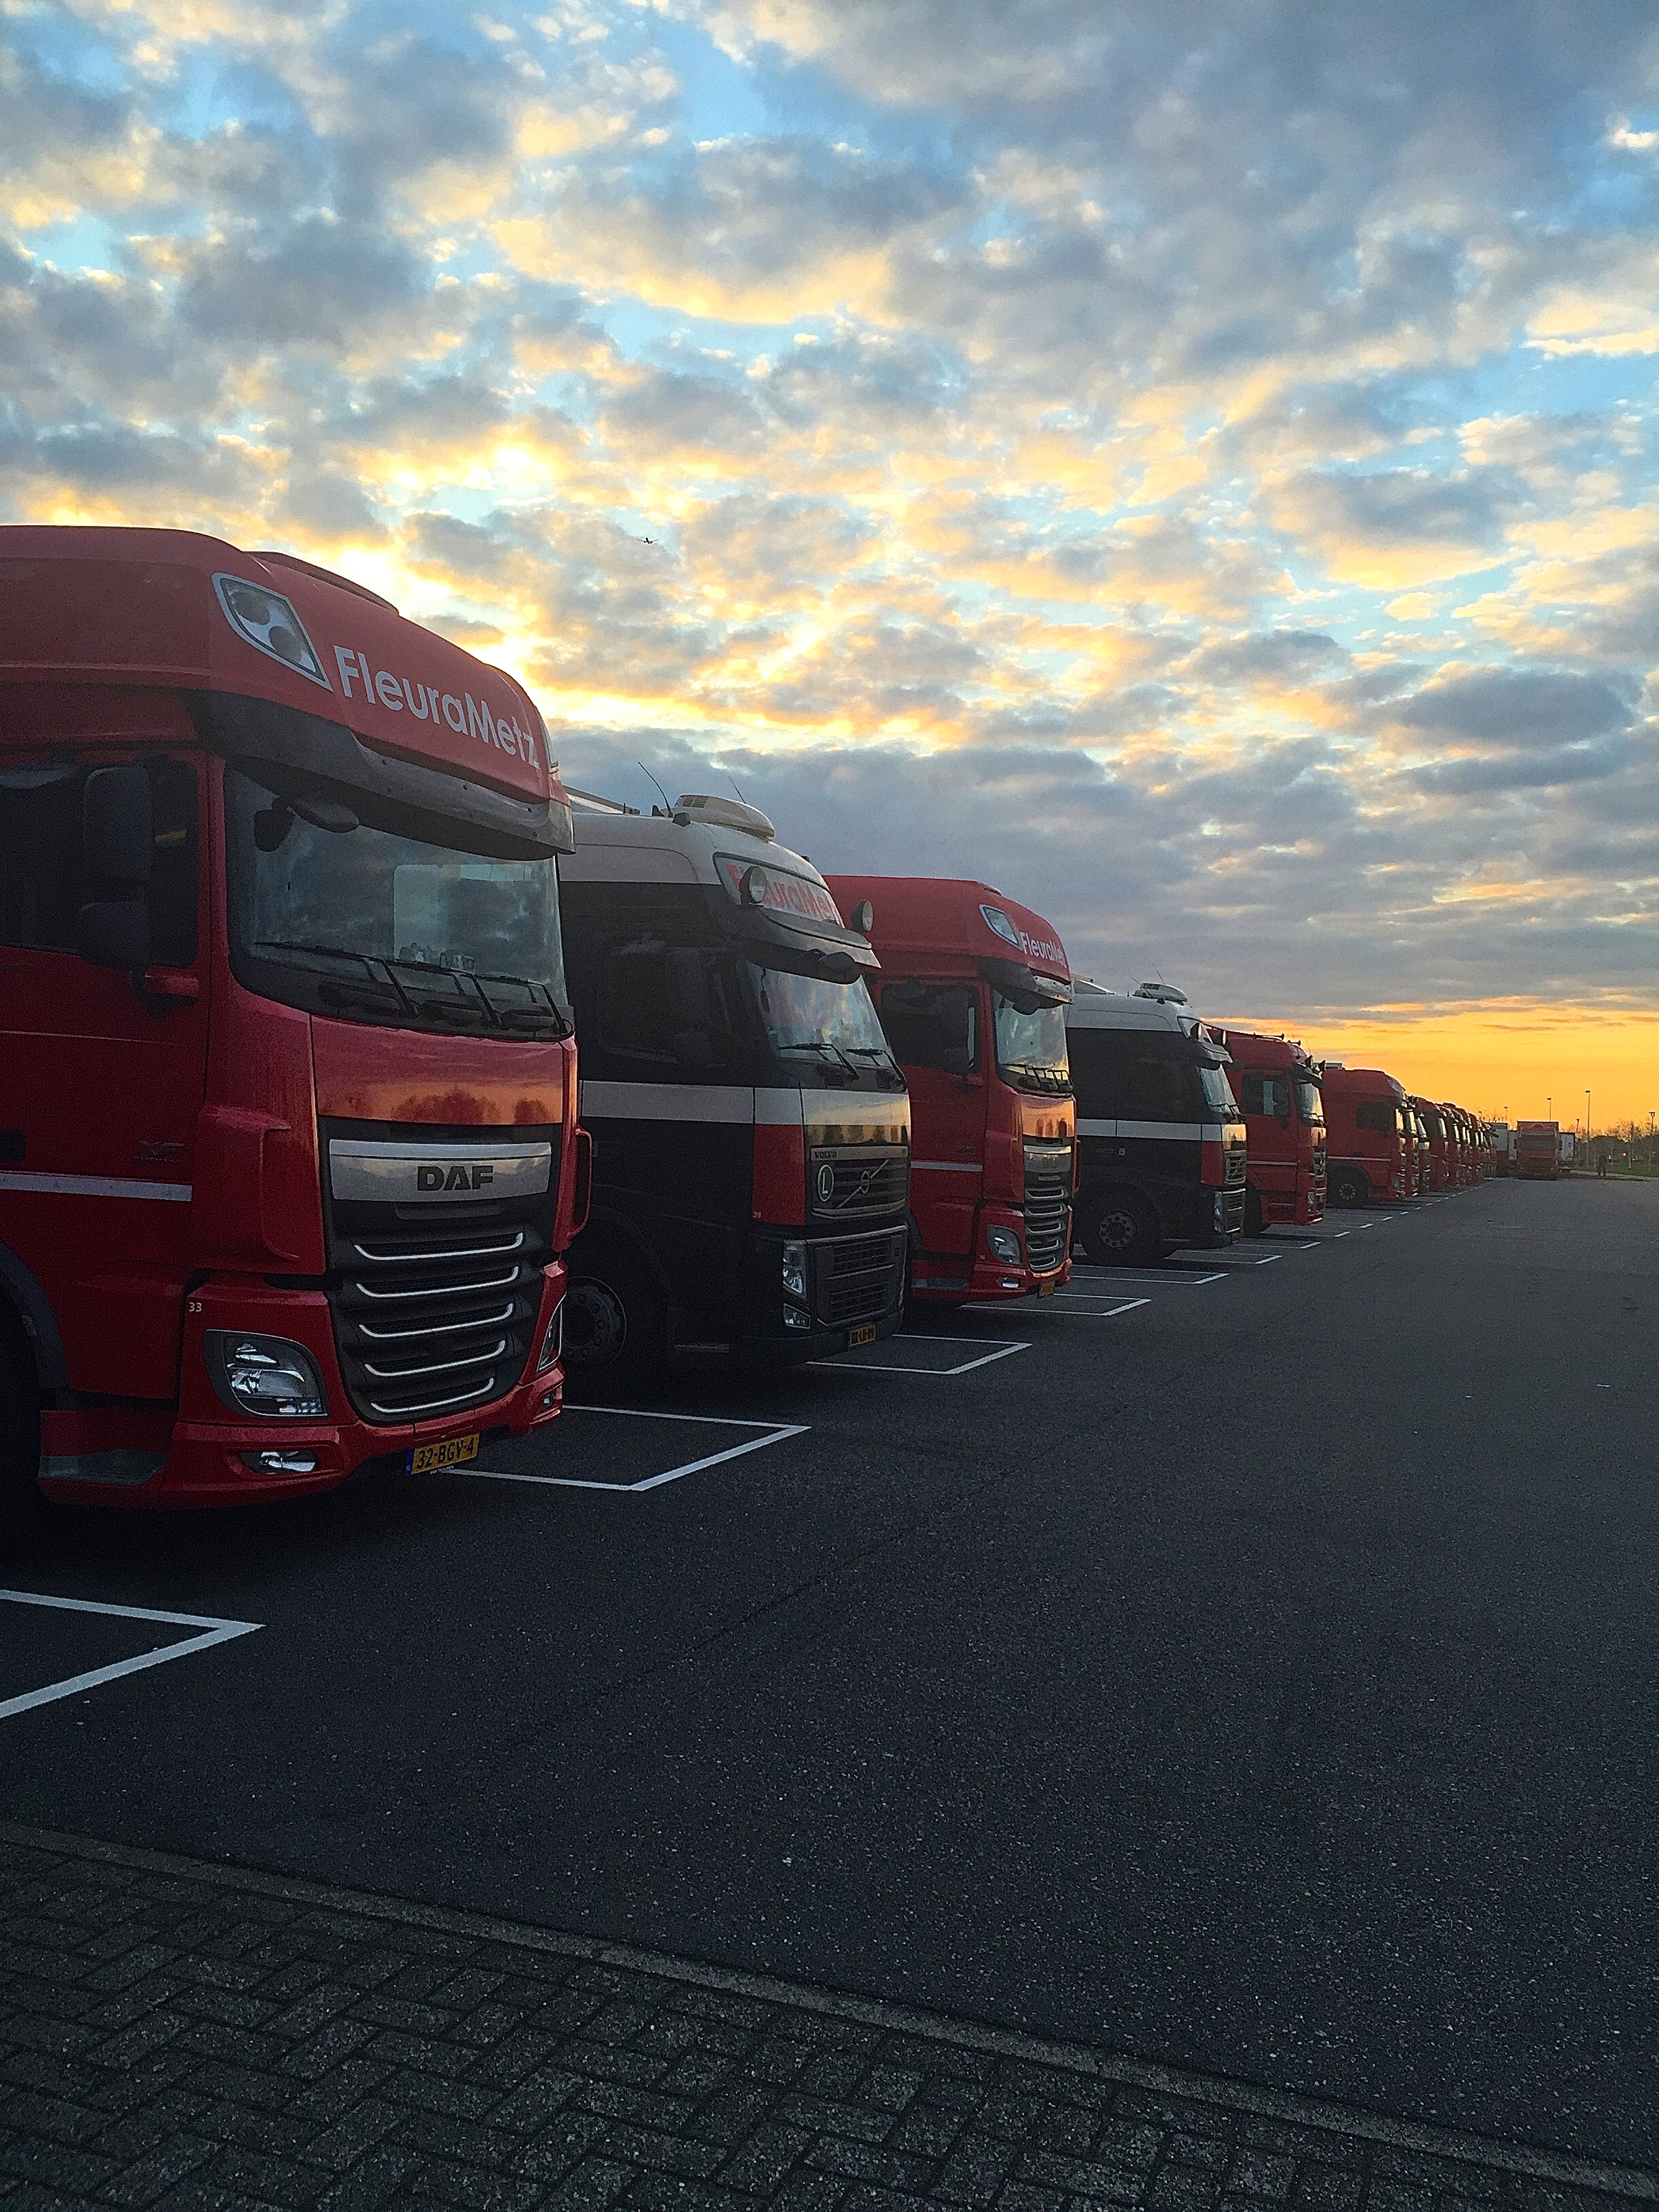 FleuraMetz's climate controlled trucks lined up and ready for delivery.